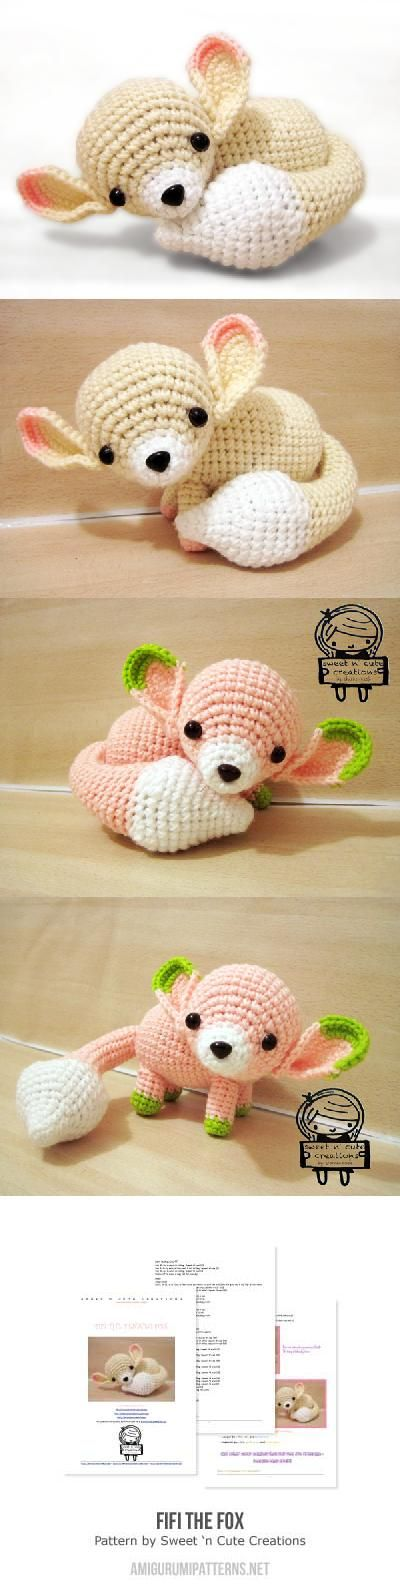 Found at Amigurumipatterns.net $2.75 for the pattern